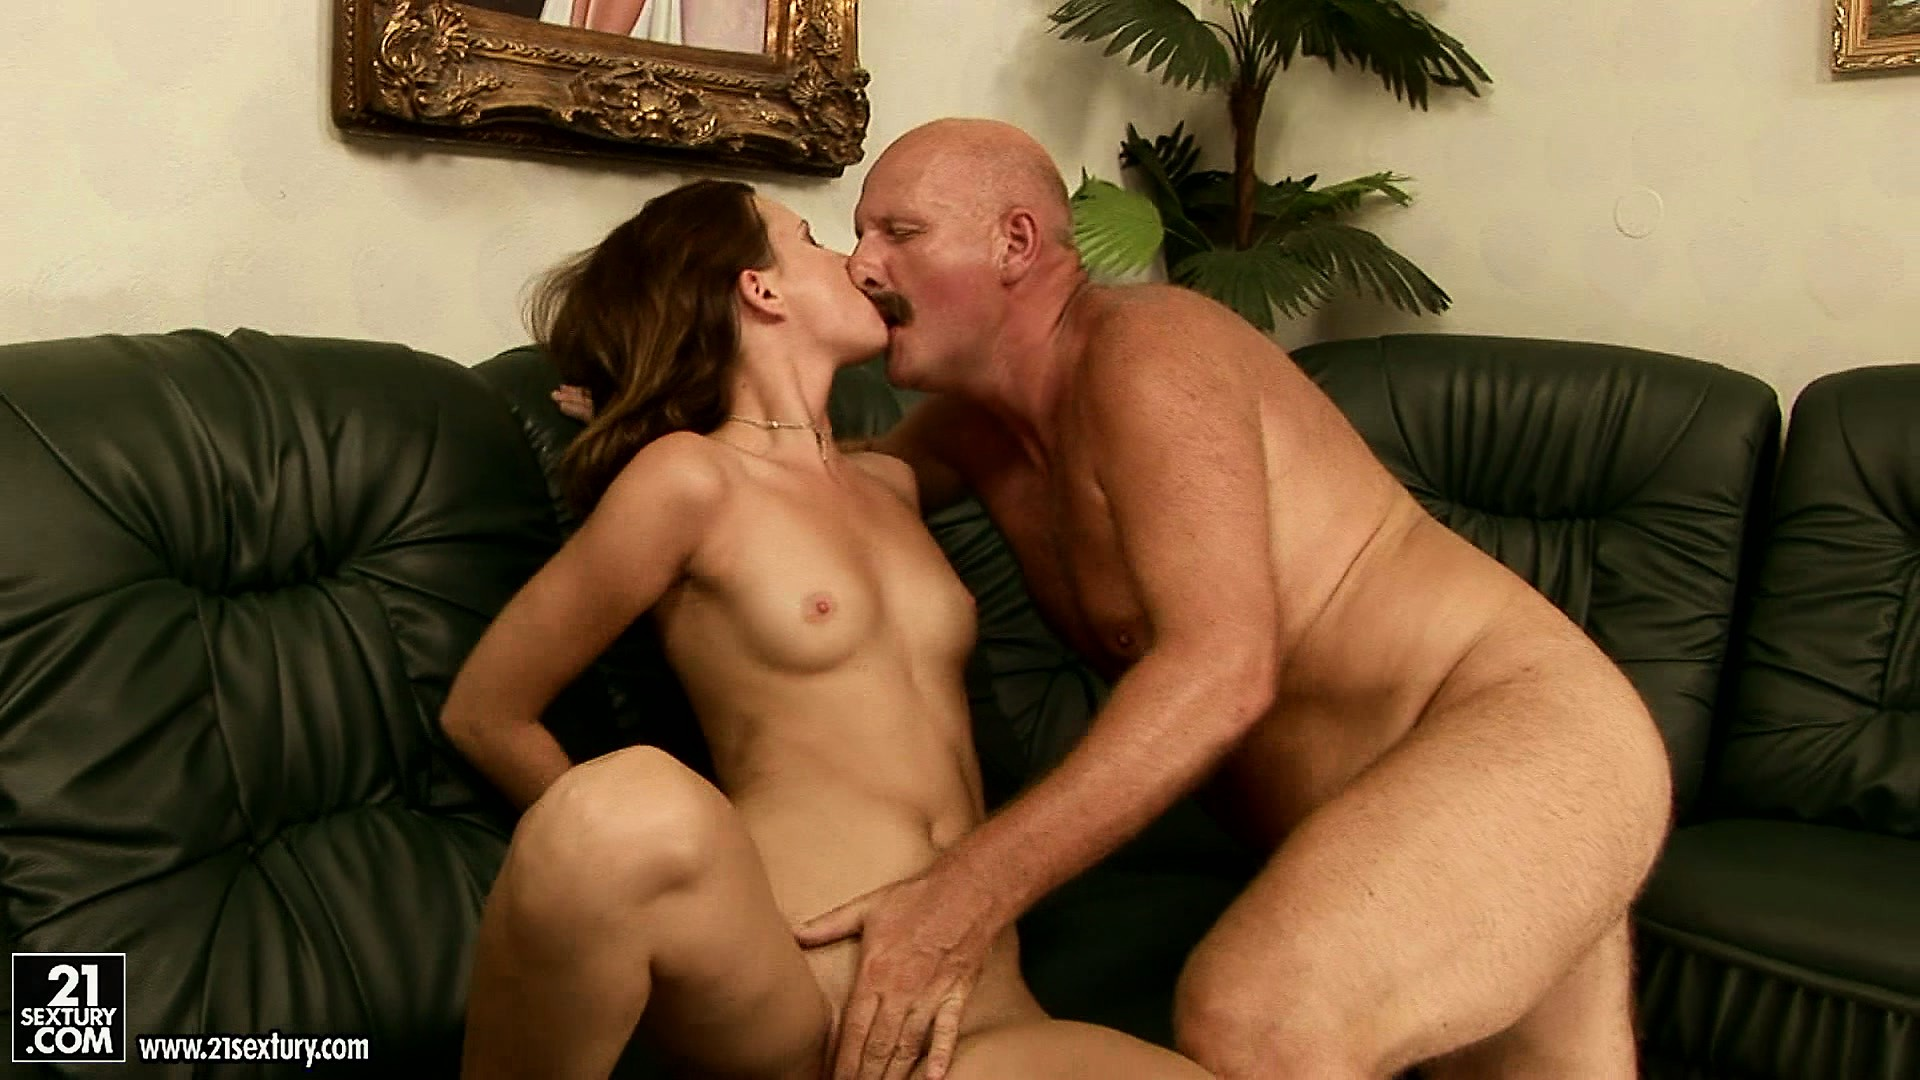 Porno Video of Kinky Old Man Sixty-nines An Adorable Chick And Even Lets Her Rim His Ass